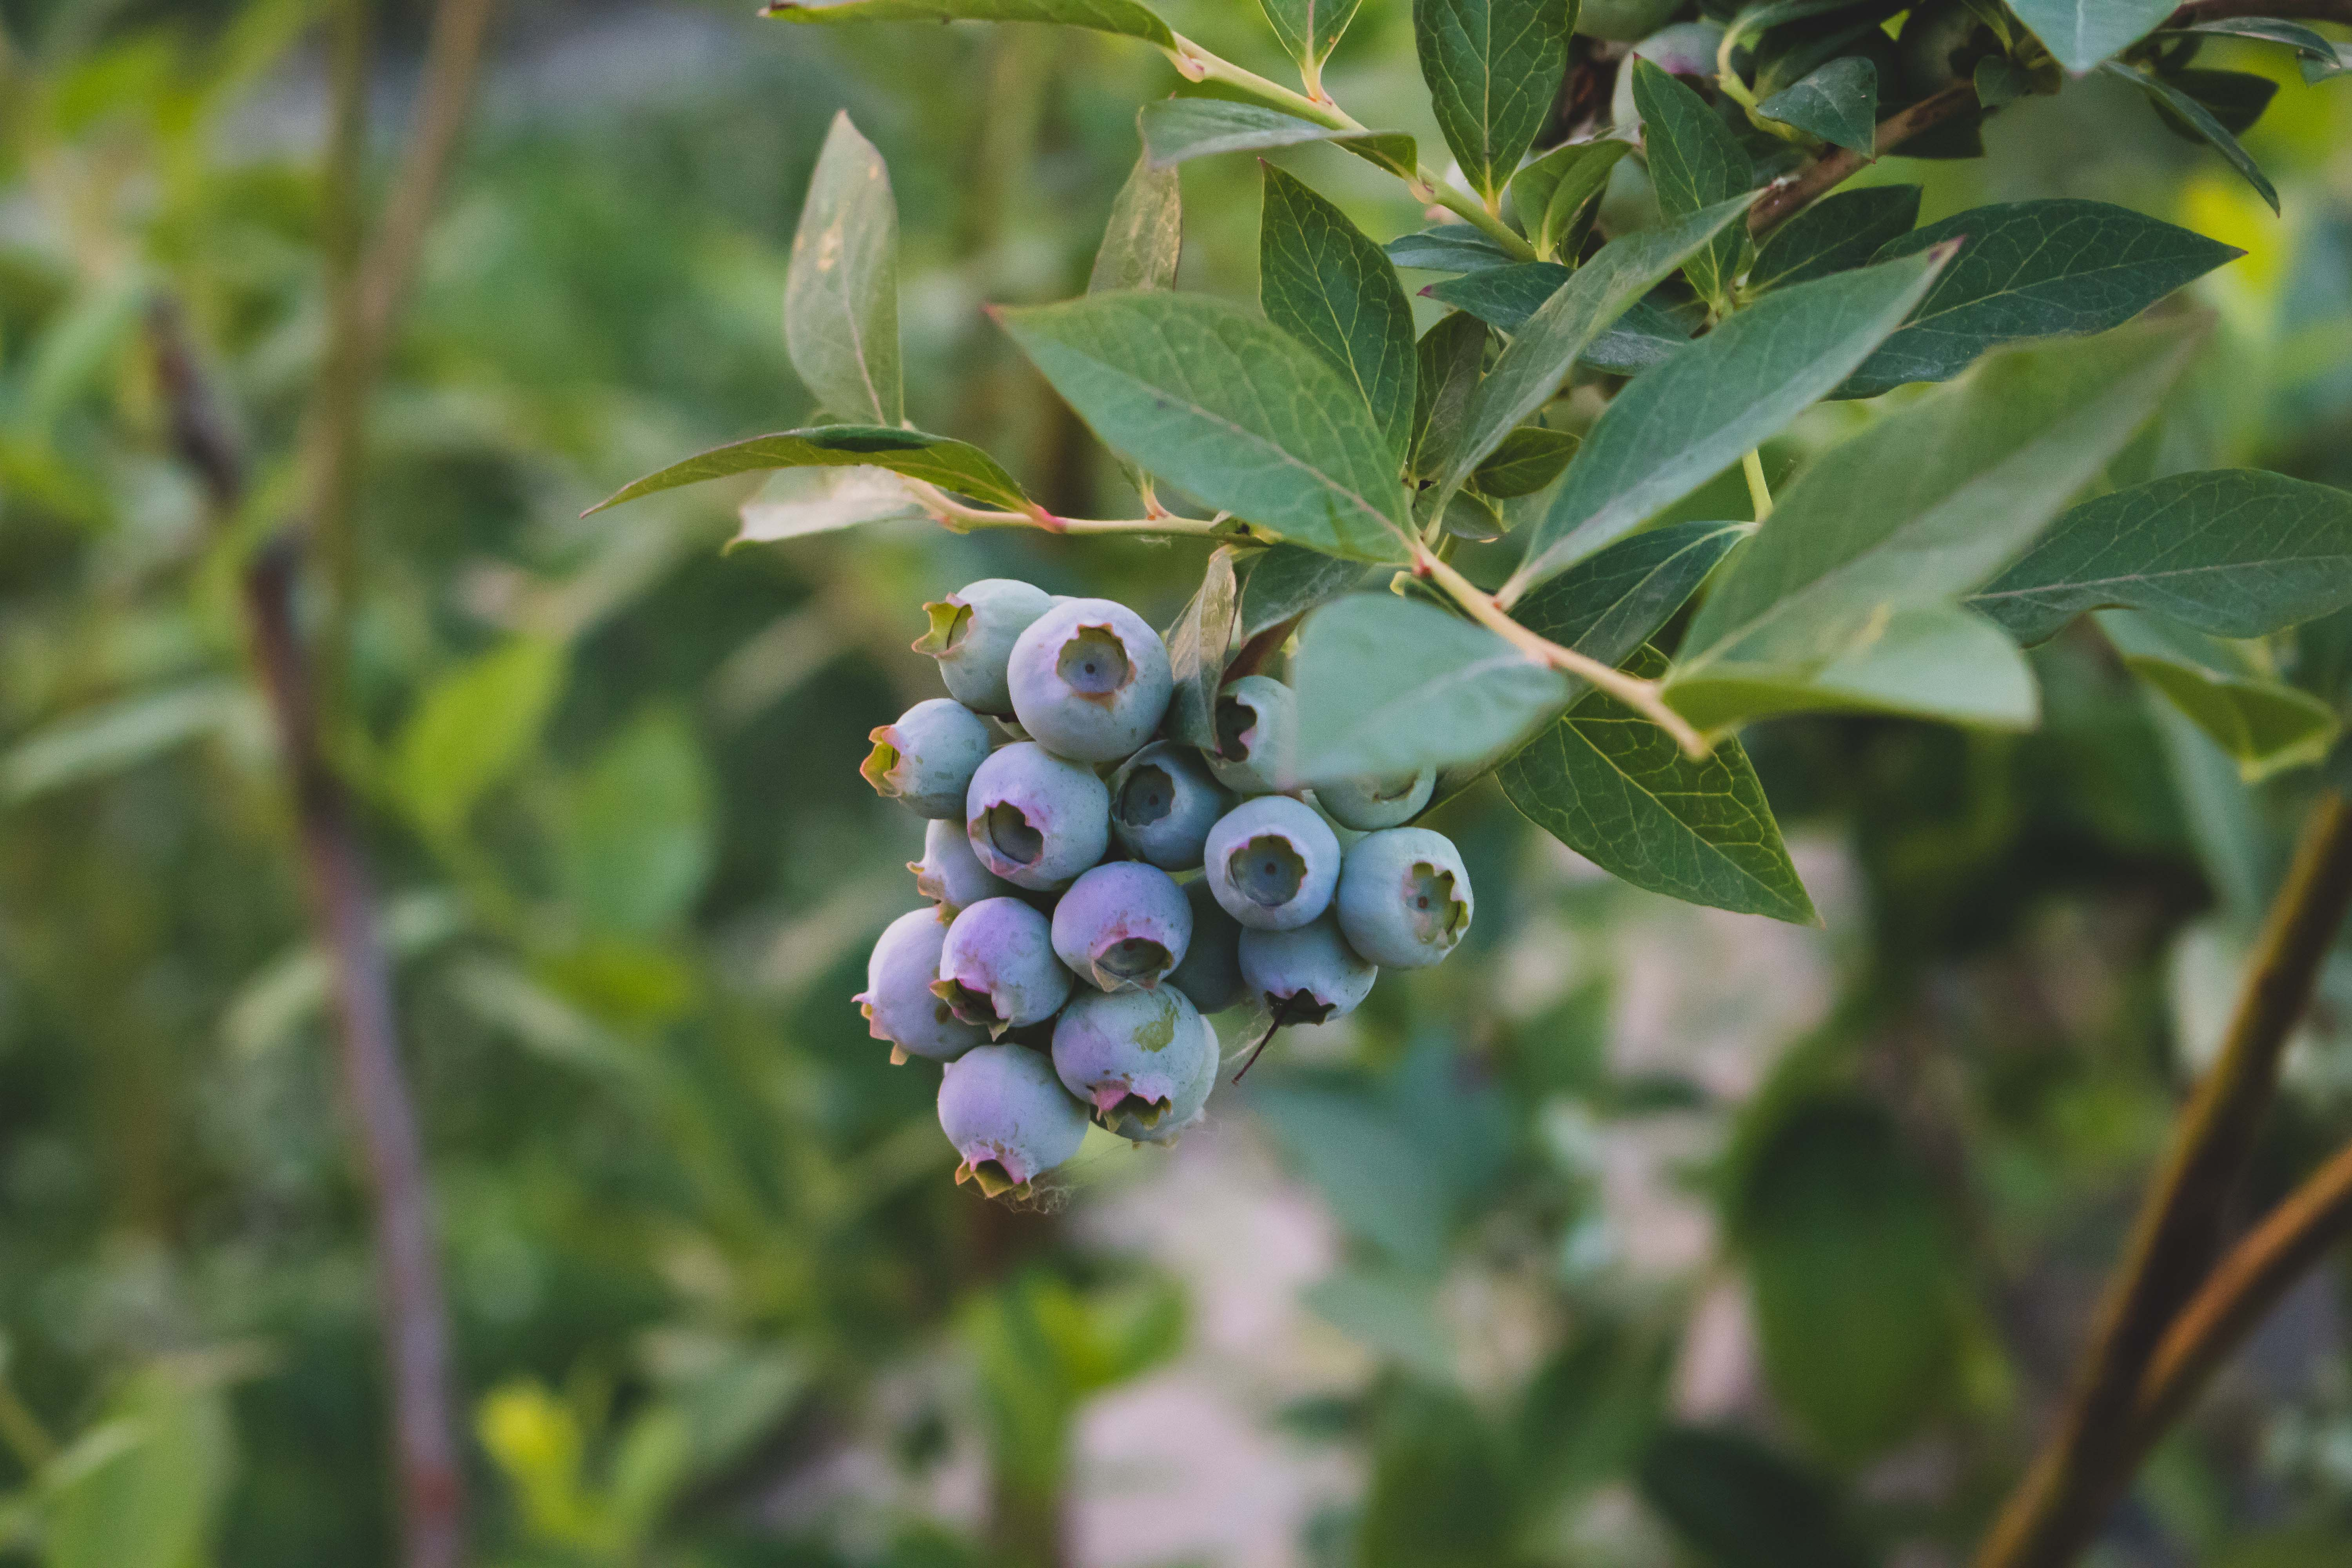 a cluster of blueberries ripen on a bush at sunset